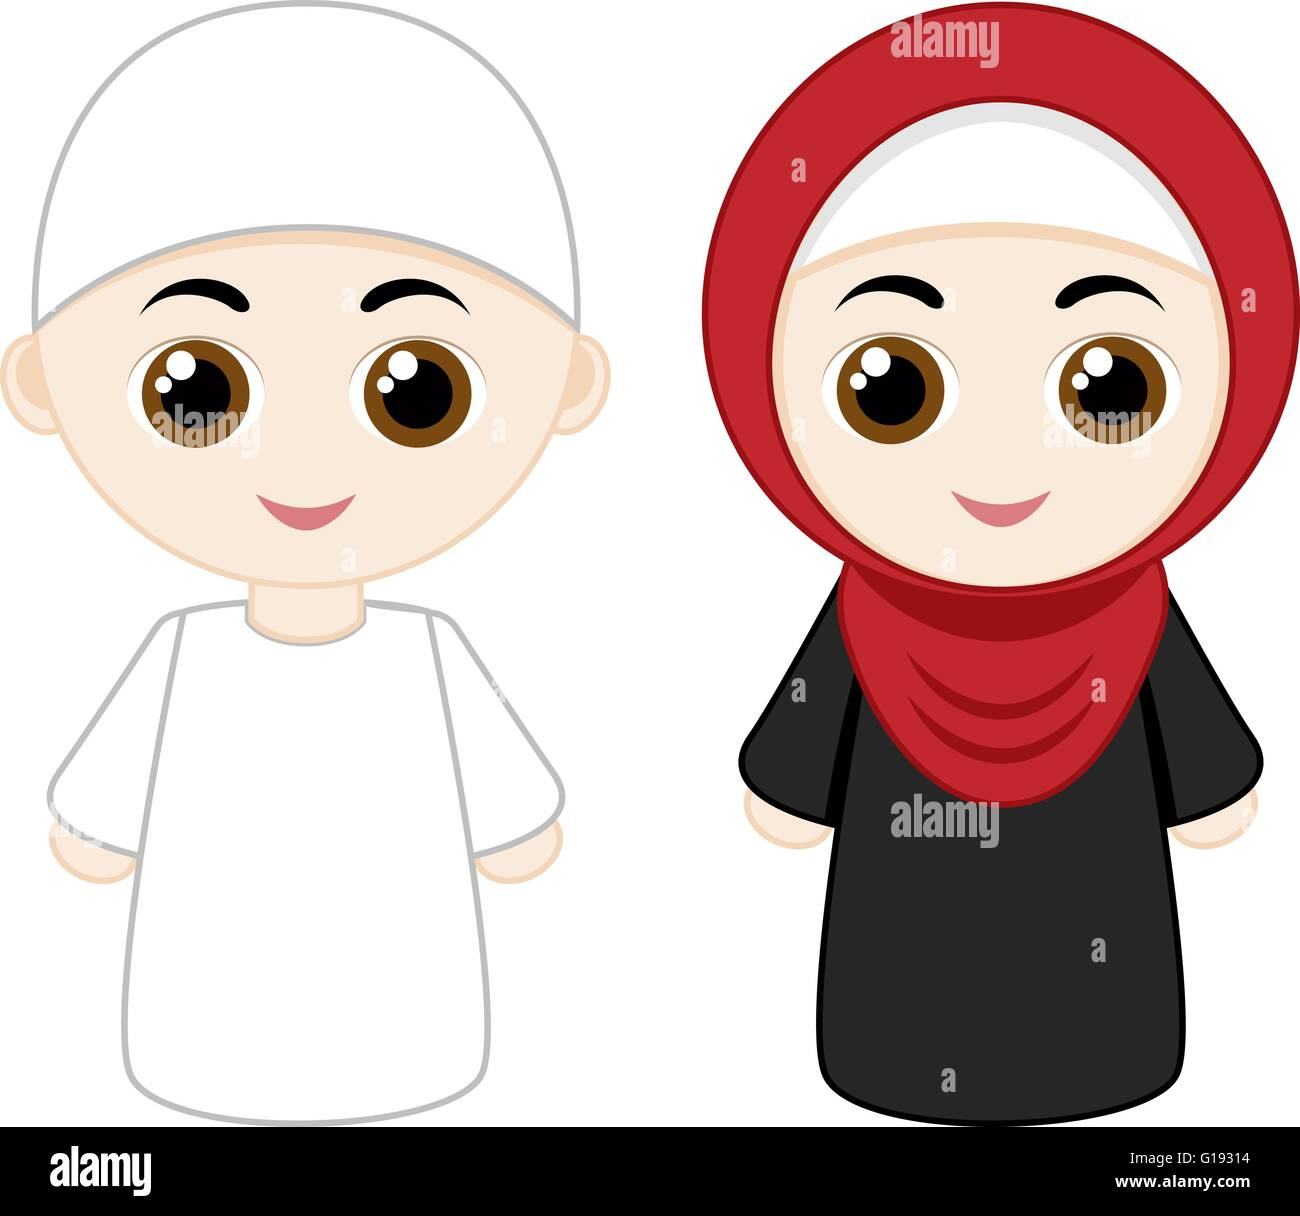 Cartoon Muslim Couple Stock Vector Art Ilration Image Jpg 618x578 Kartun Couples Muslimah Family Anime Pictures